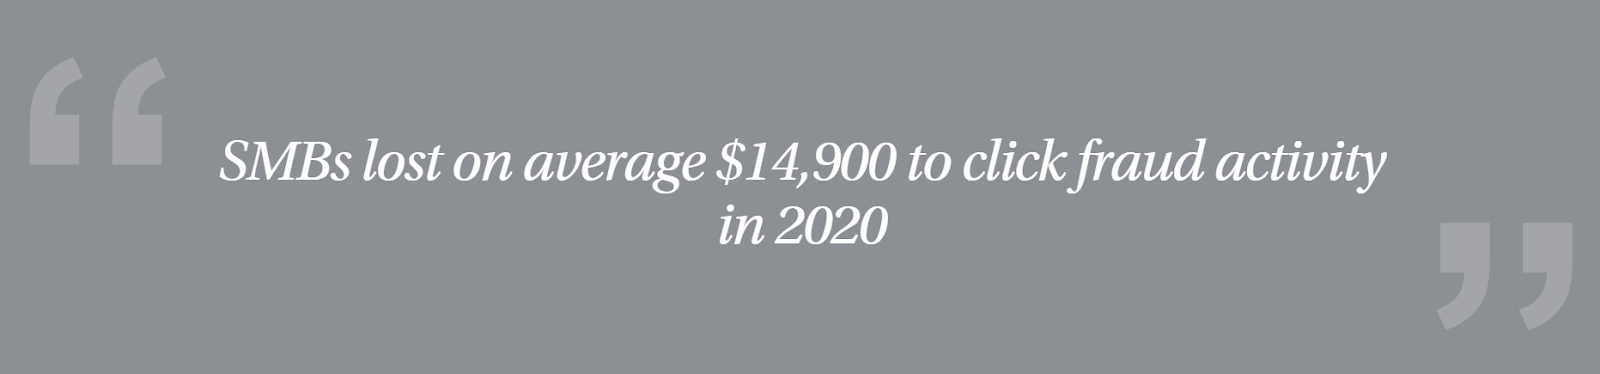 click fraud in 2020